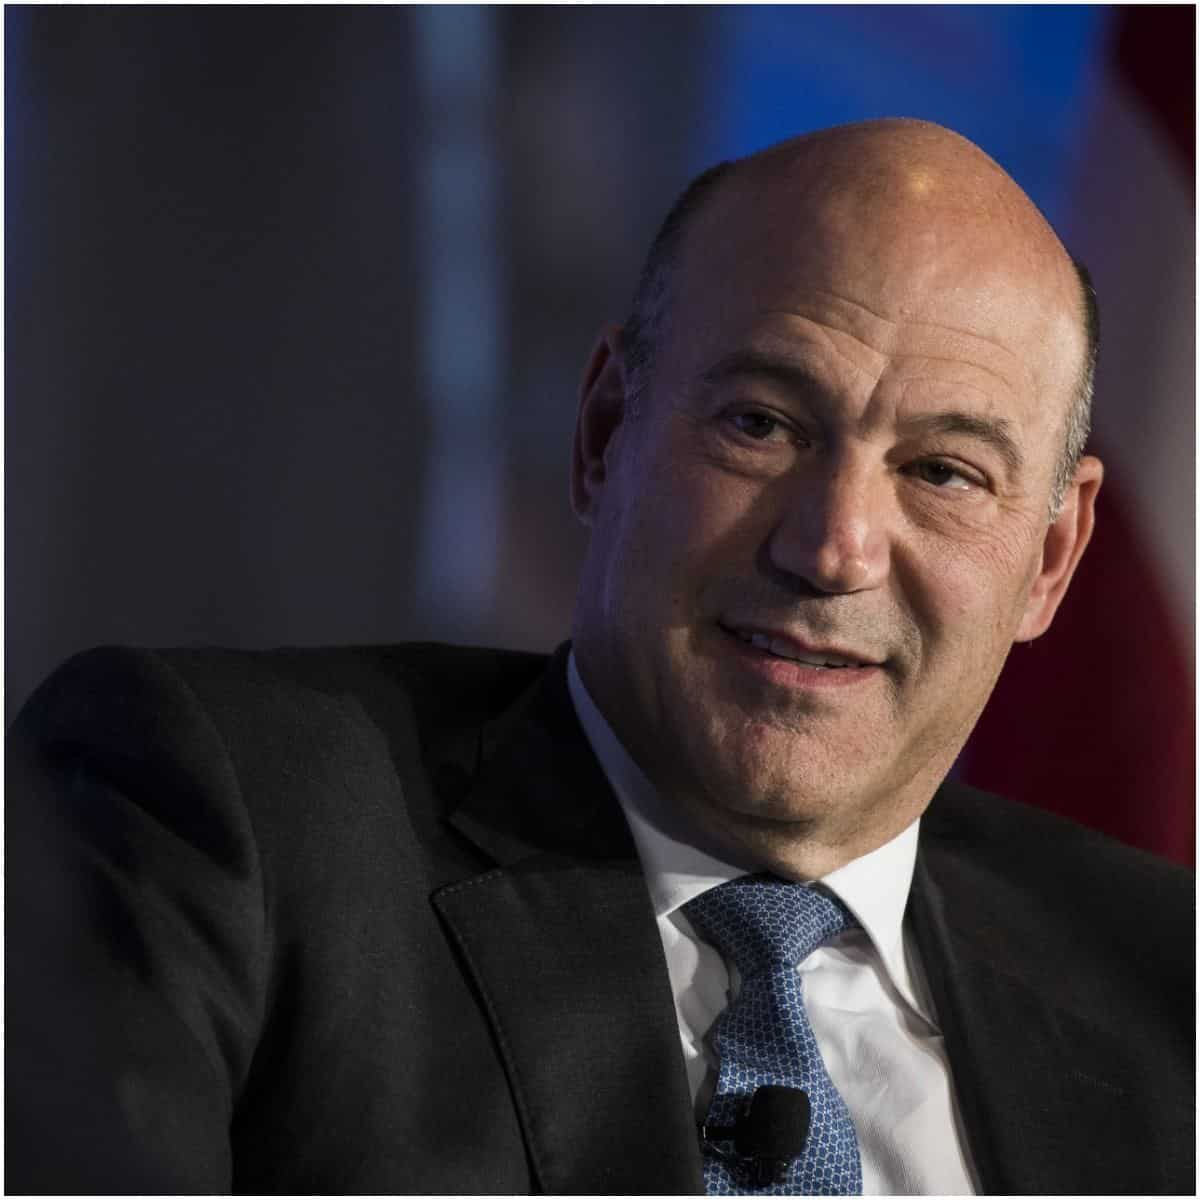 what is the net worth of Gary Cohn